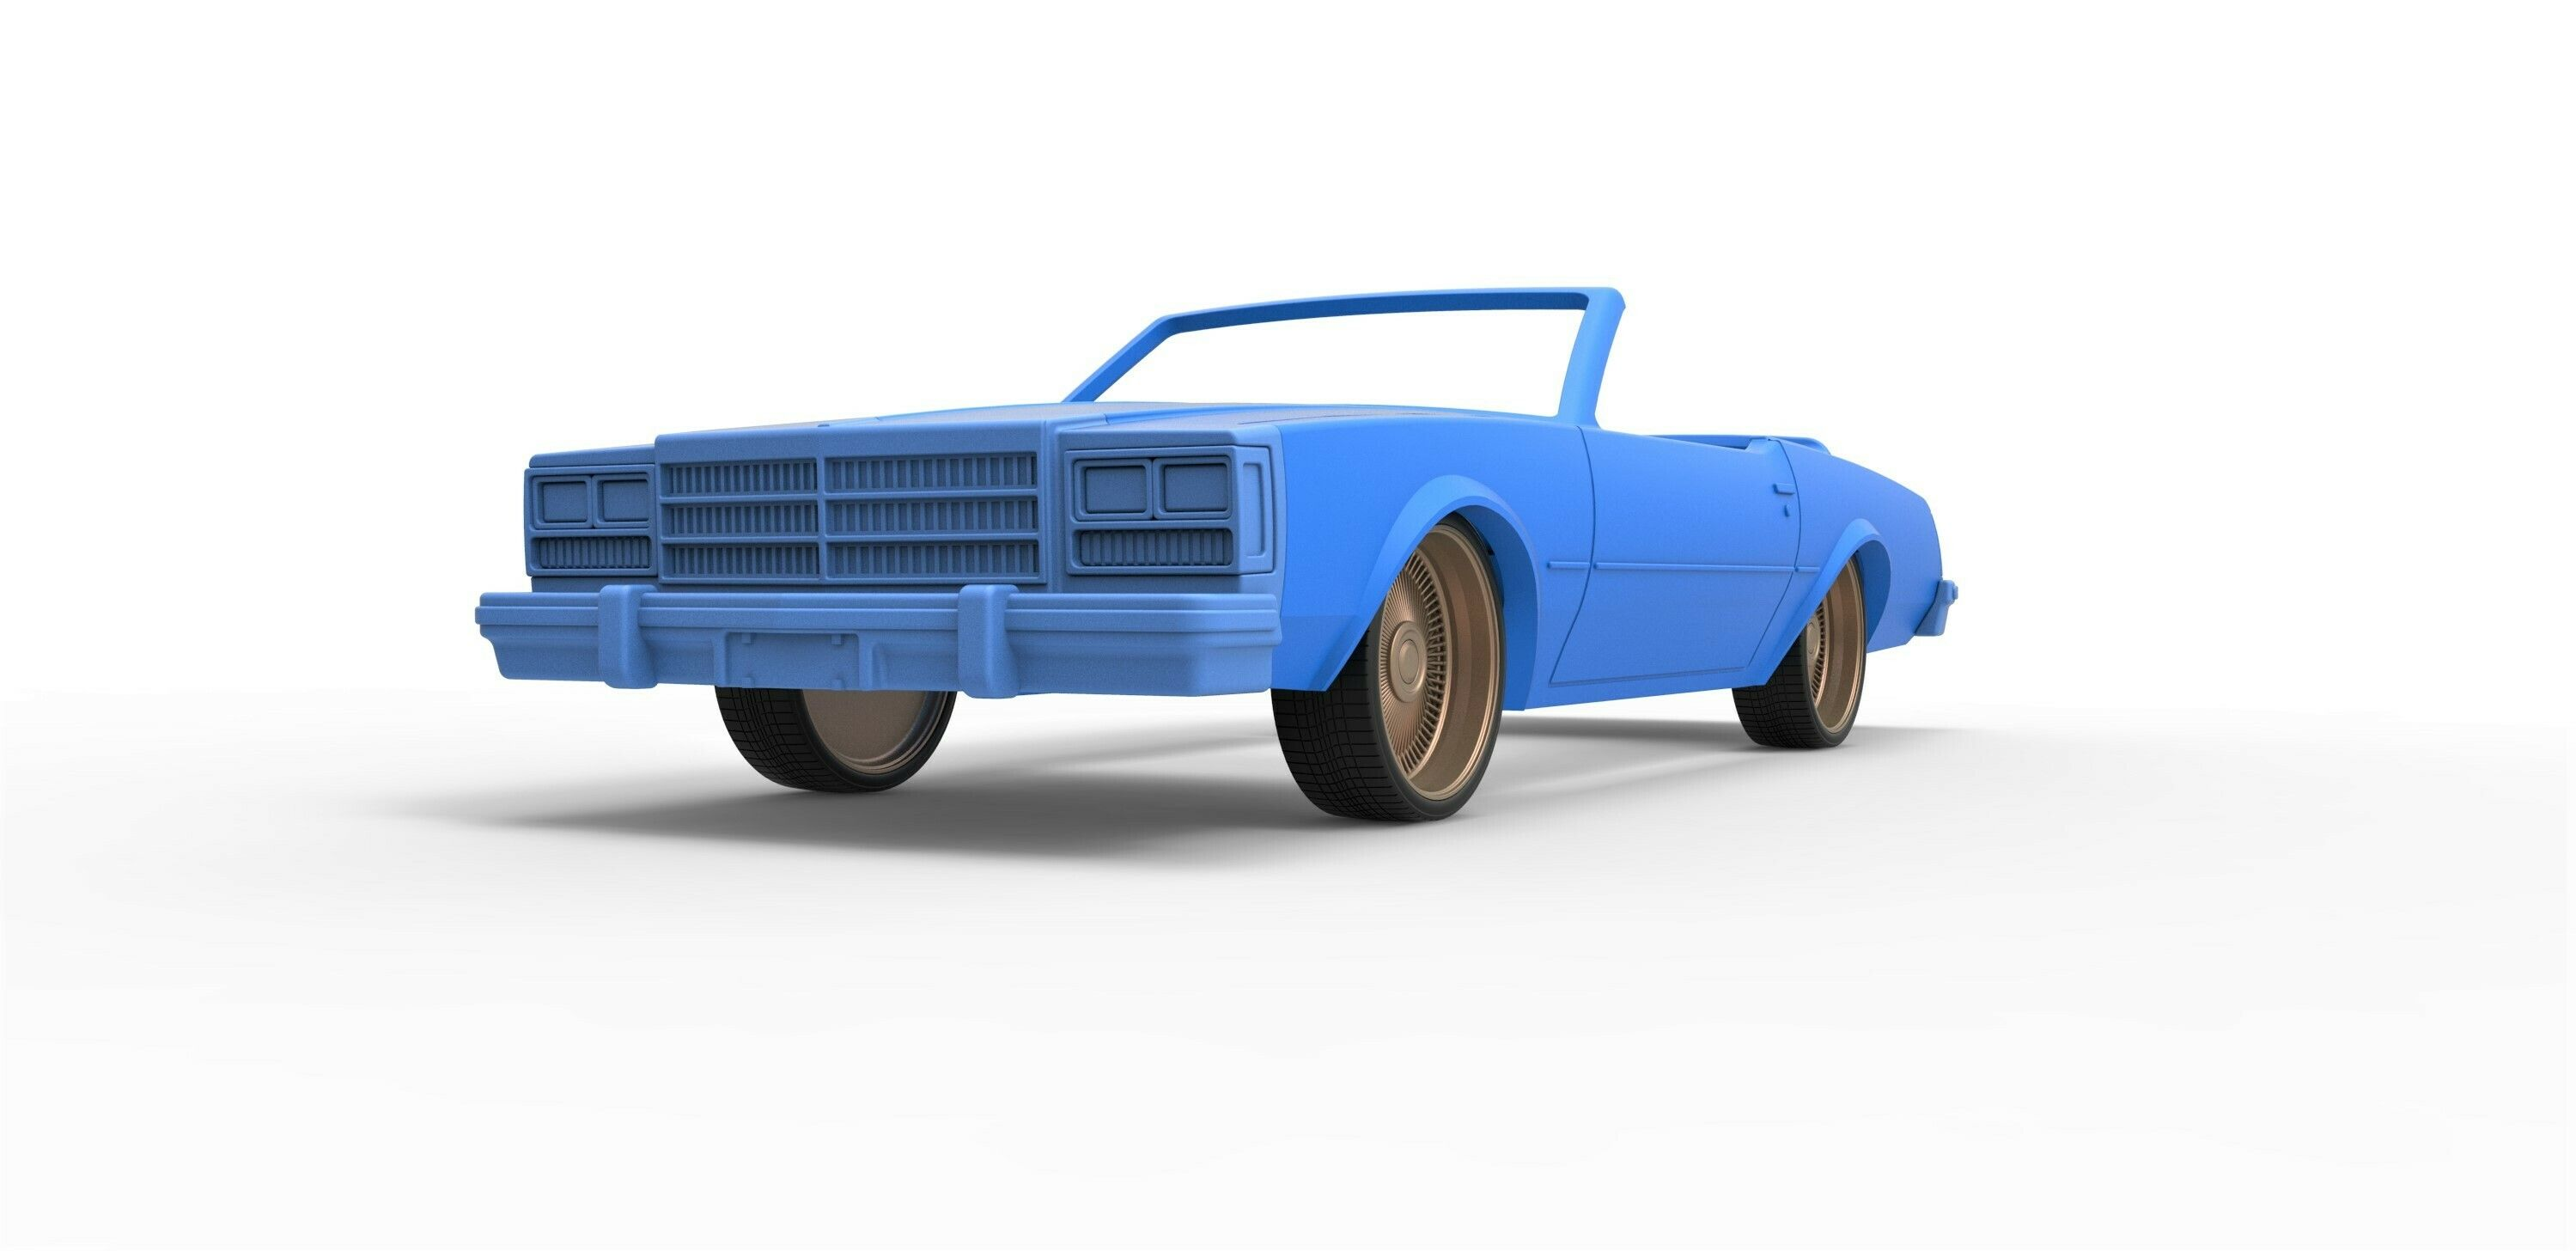 5.jpg Download STL file Diecast shell and wheels Buick Regal 1977 cabriolet Scale 1:25 • 3D printable design, CosplayItemsRock